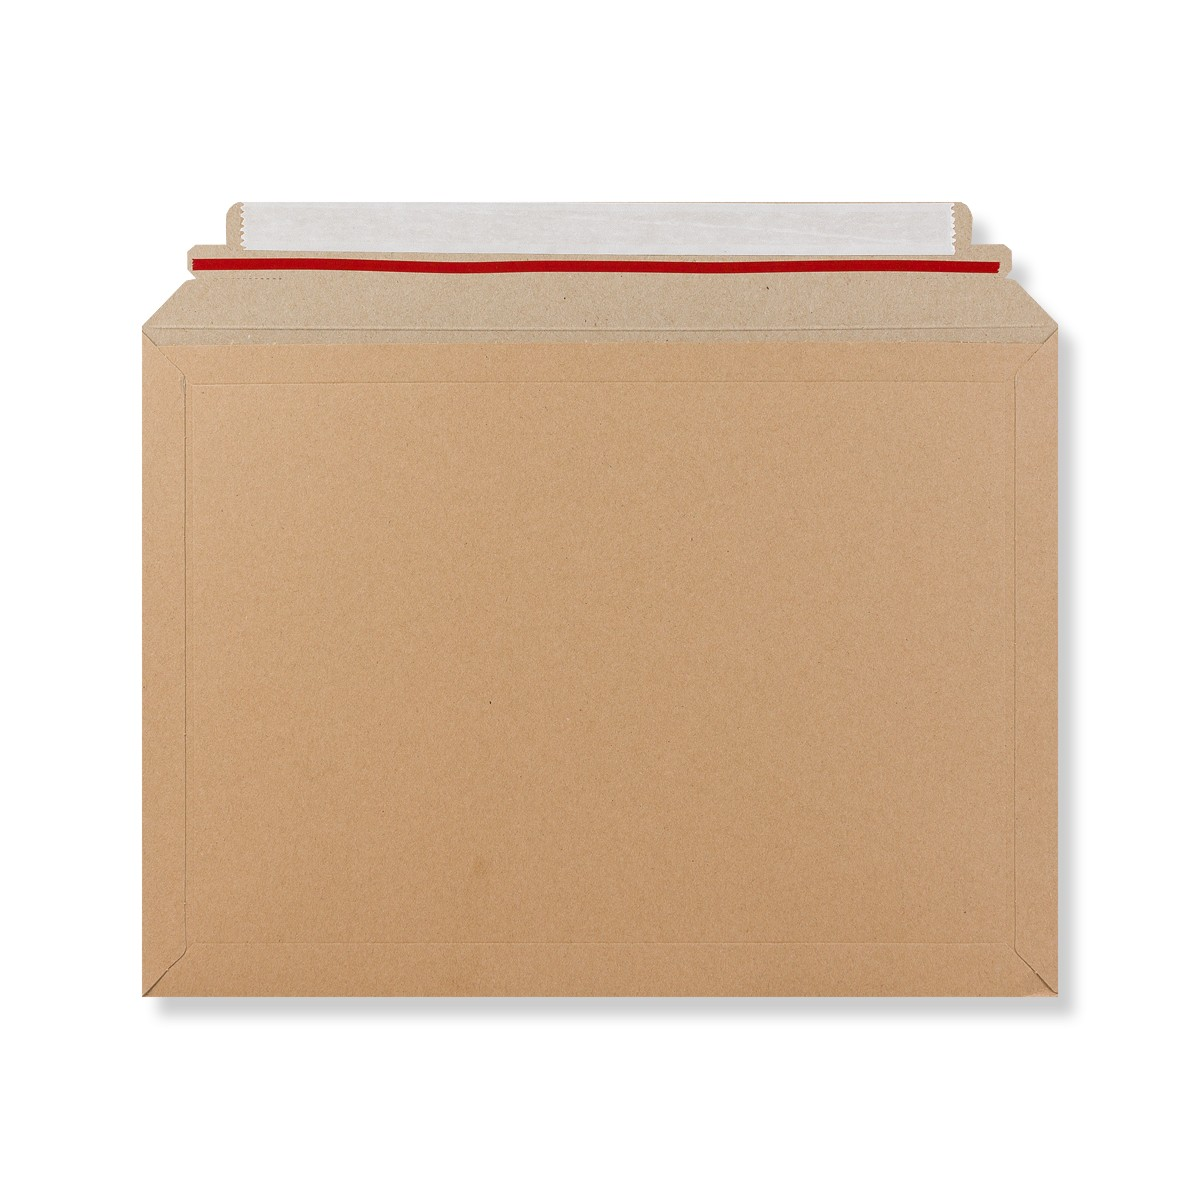 328 x 458mm CAPACITY BOOK MAILERS 400GSM